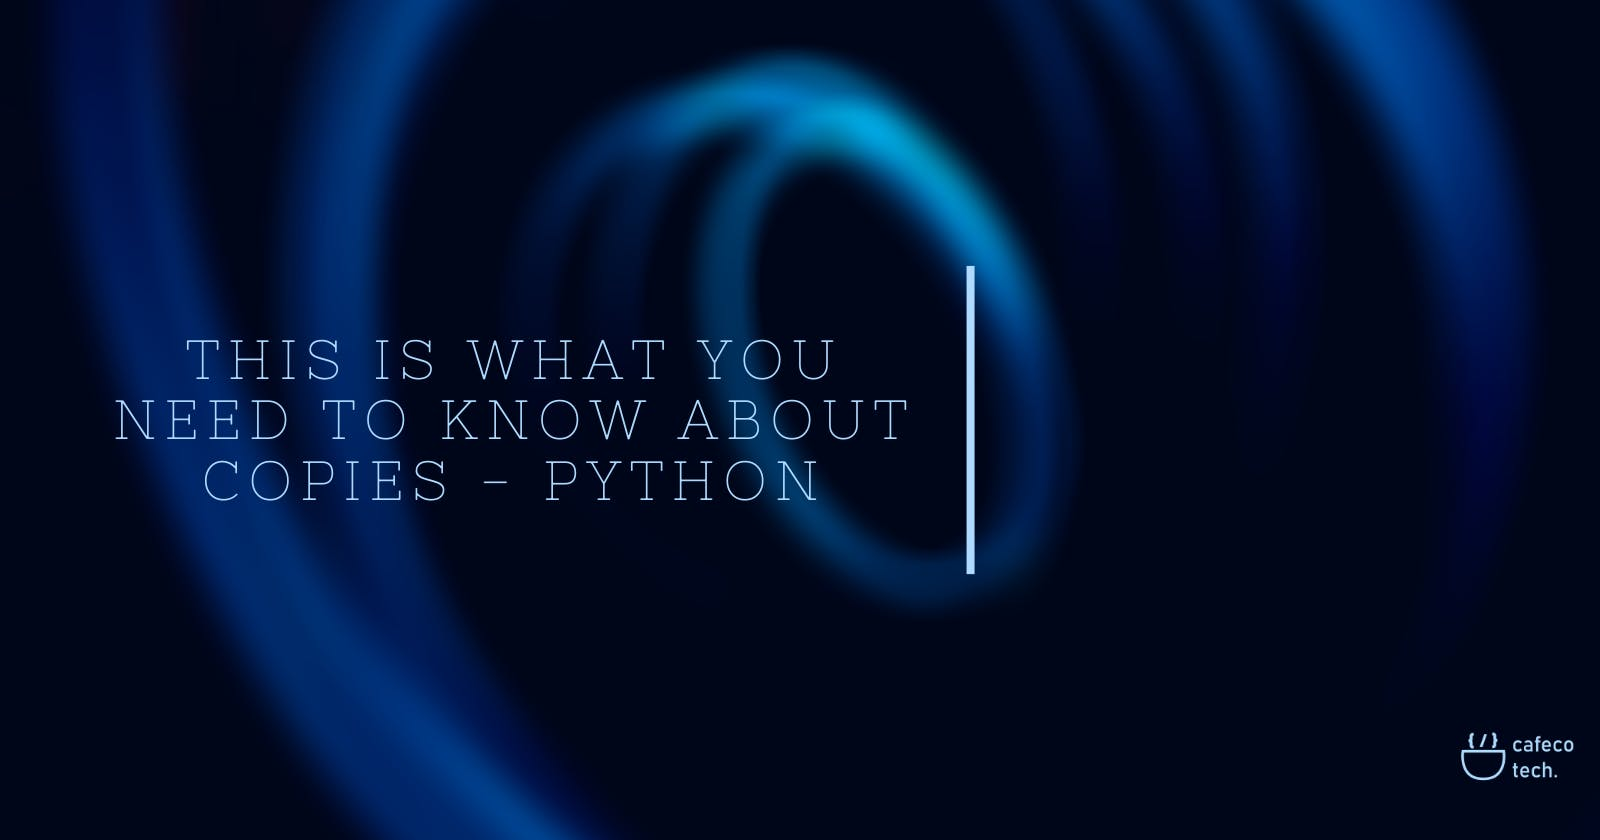 This is What You Need to Know About Copies - Python